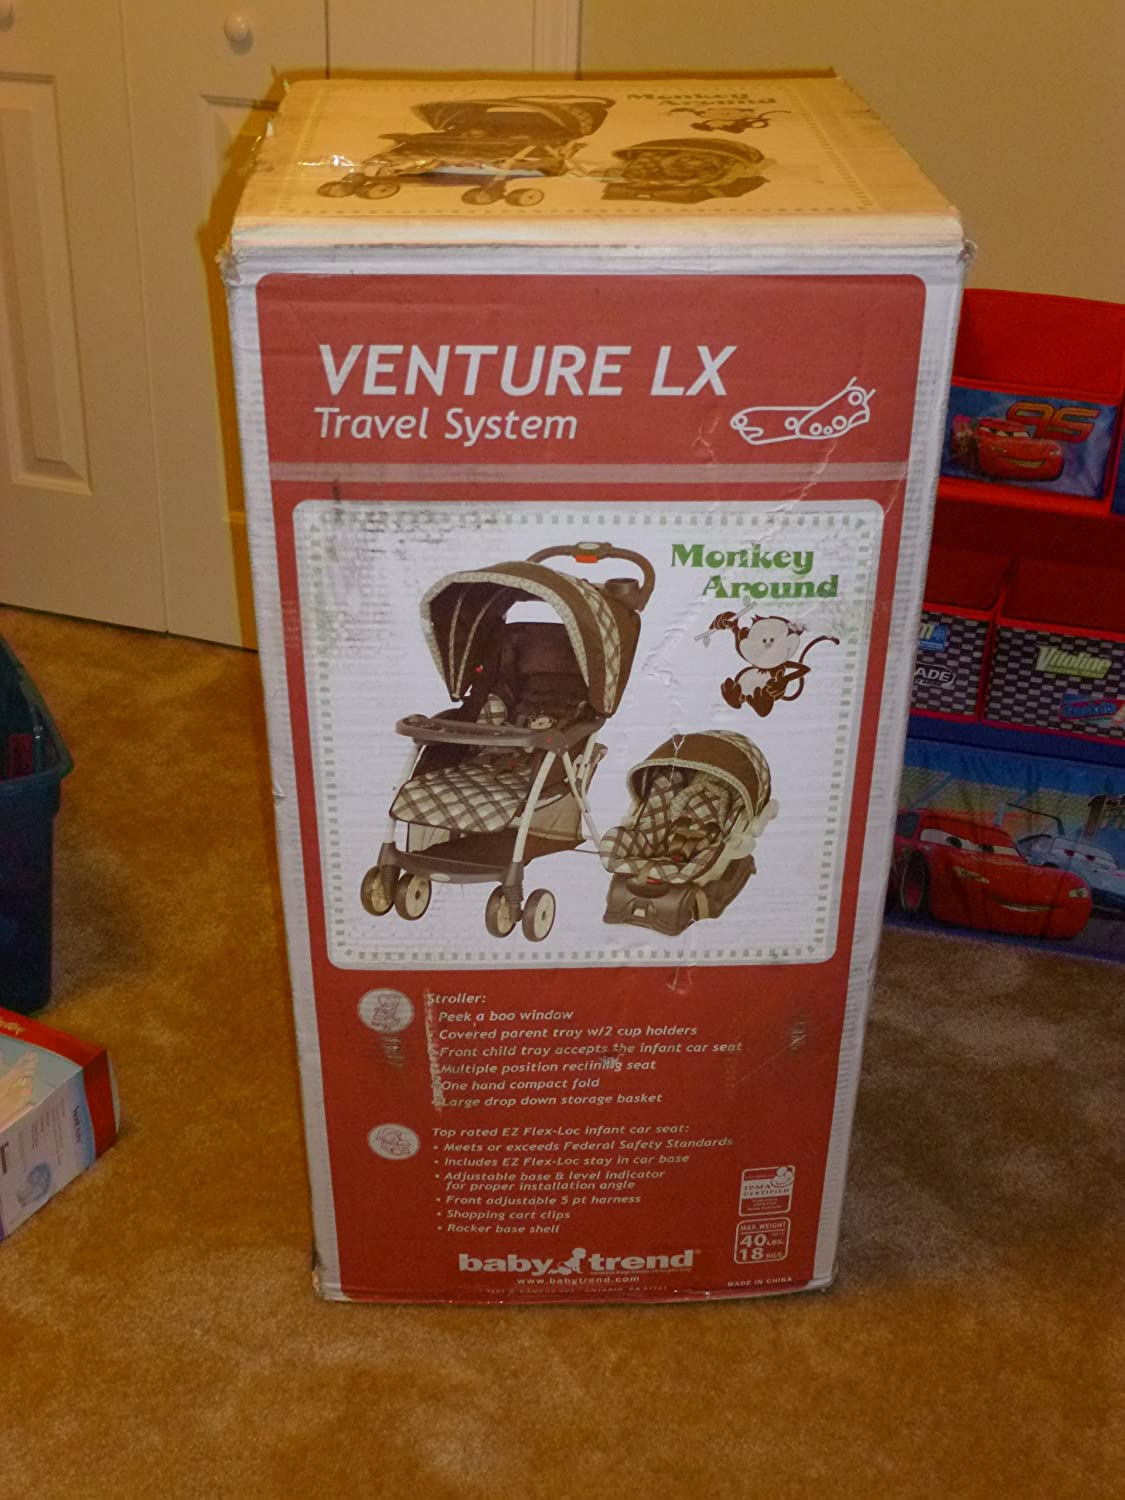 Amazon.com : Baby Trend Venture LX Travel System Stroller - Monkey Around : Toy Figures : Baby